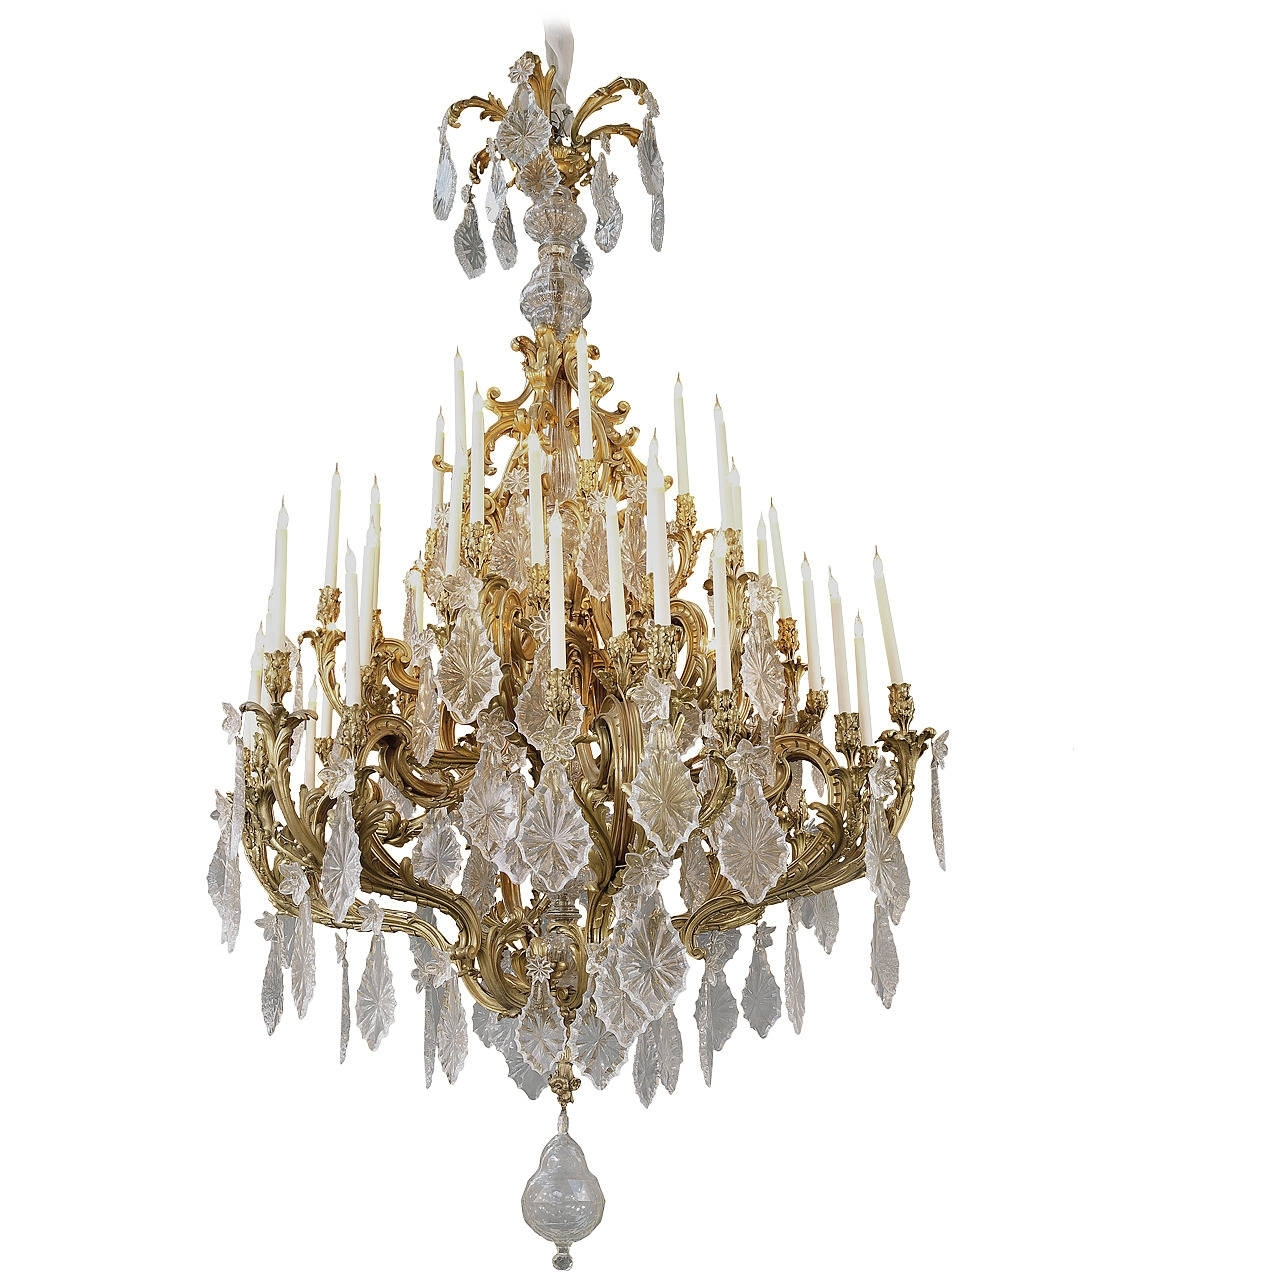 Chandelier Lamps, Big For Latest Expensive Crystal Chandeliers (View 5 of 15)